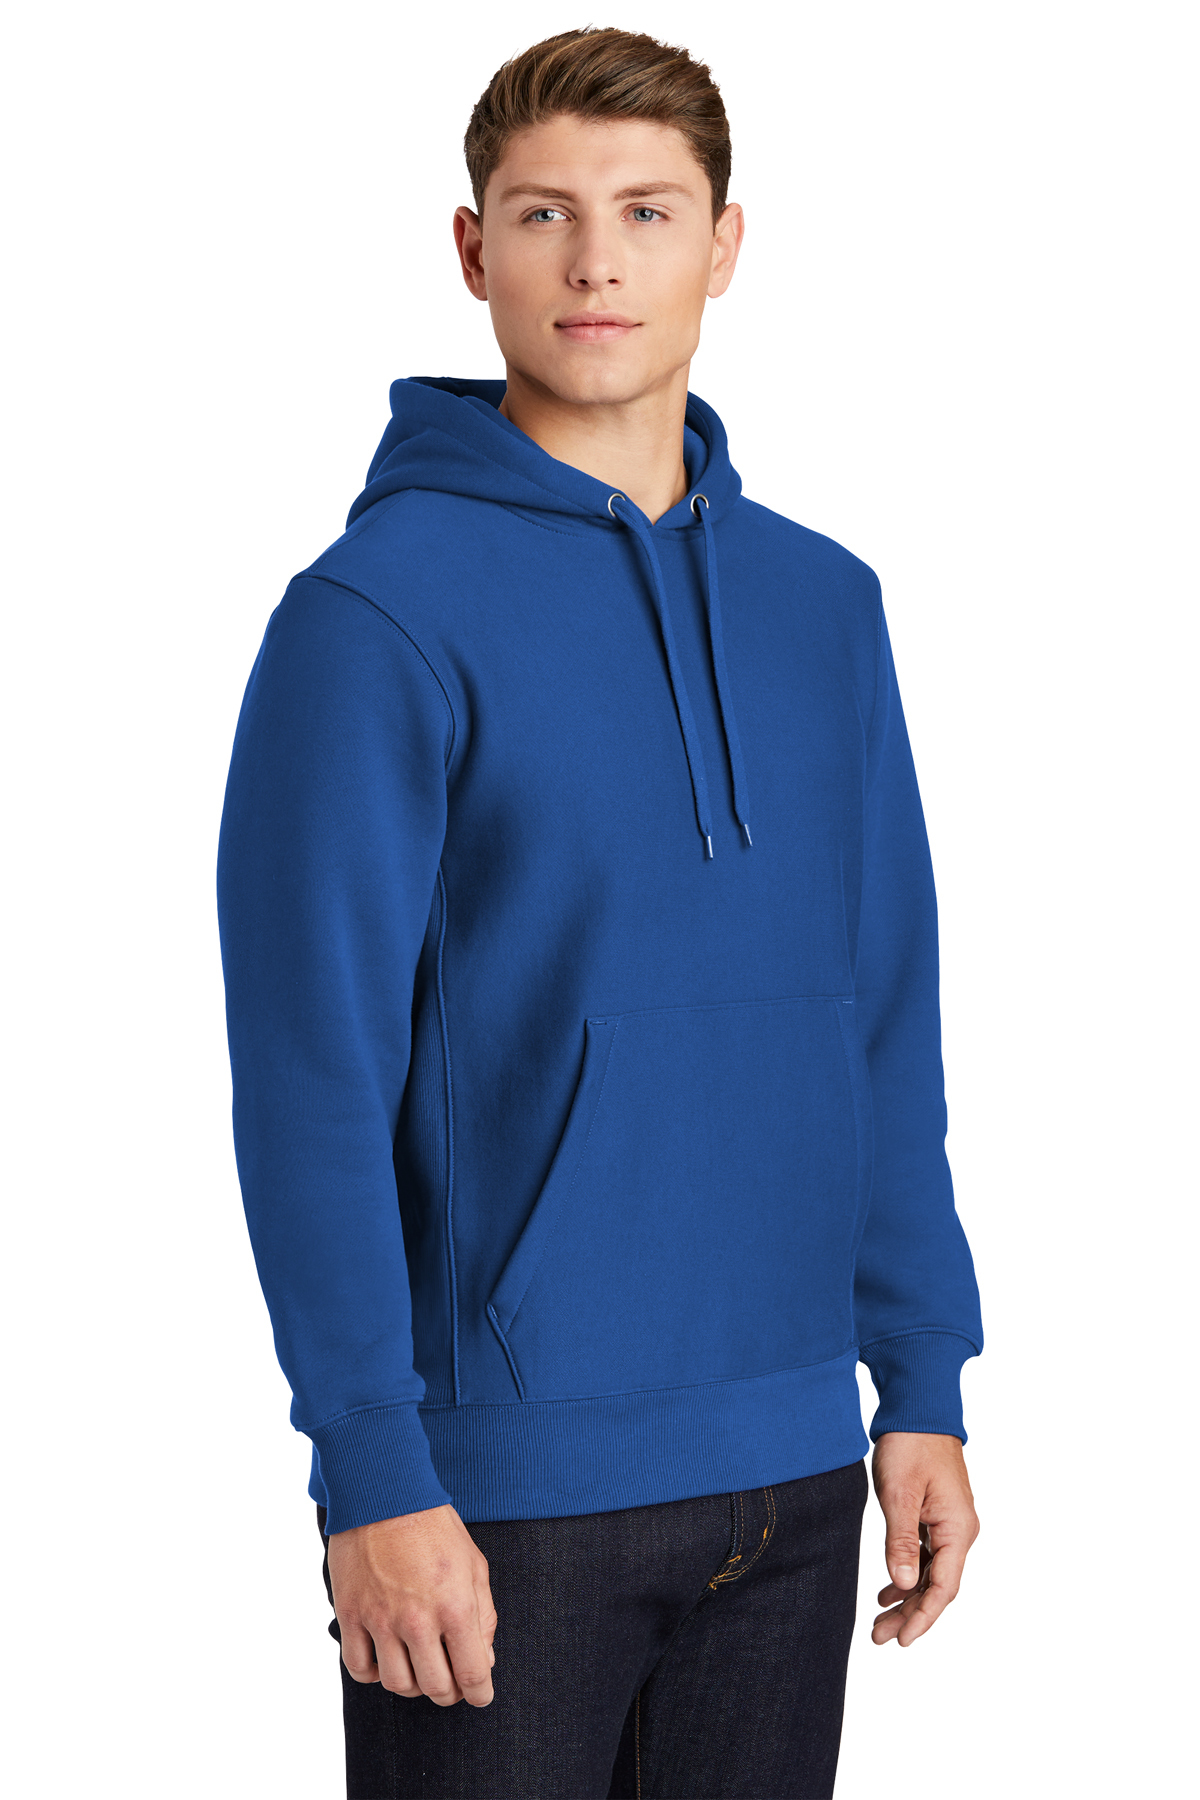 Sport Tek Super Heavyweight Pullover Hooded Sweatshirt Heavyweight Sweatshirts Fleece Sanmar A wide variety of sportek options are available to you, such as insole material. sport tek super heavyweight pullover hooded sweatshirt heavyweight sweatshirts fleece sanmar